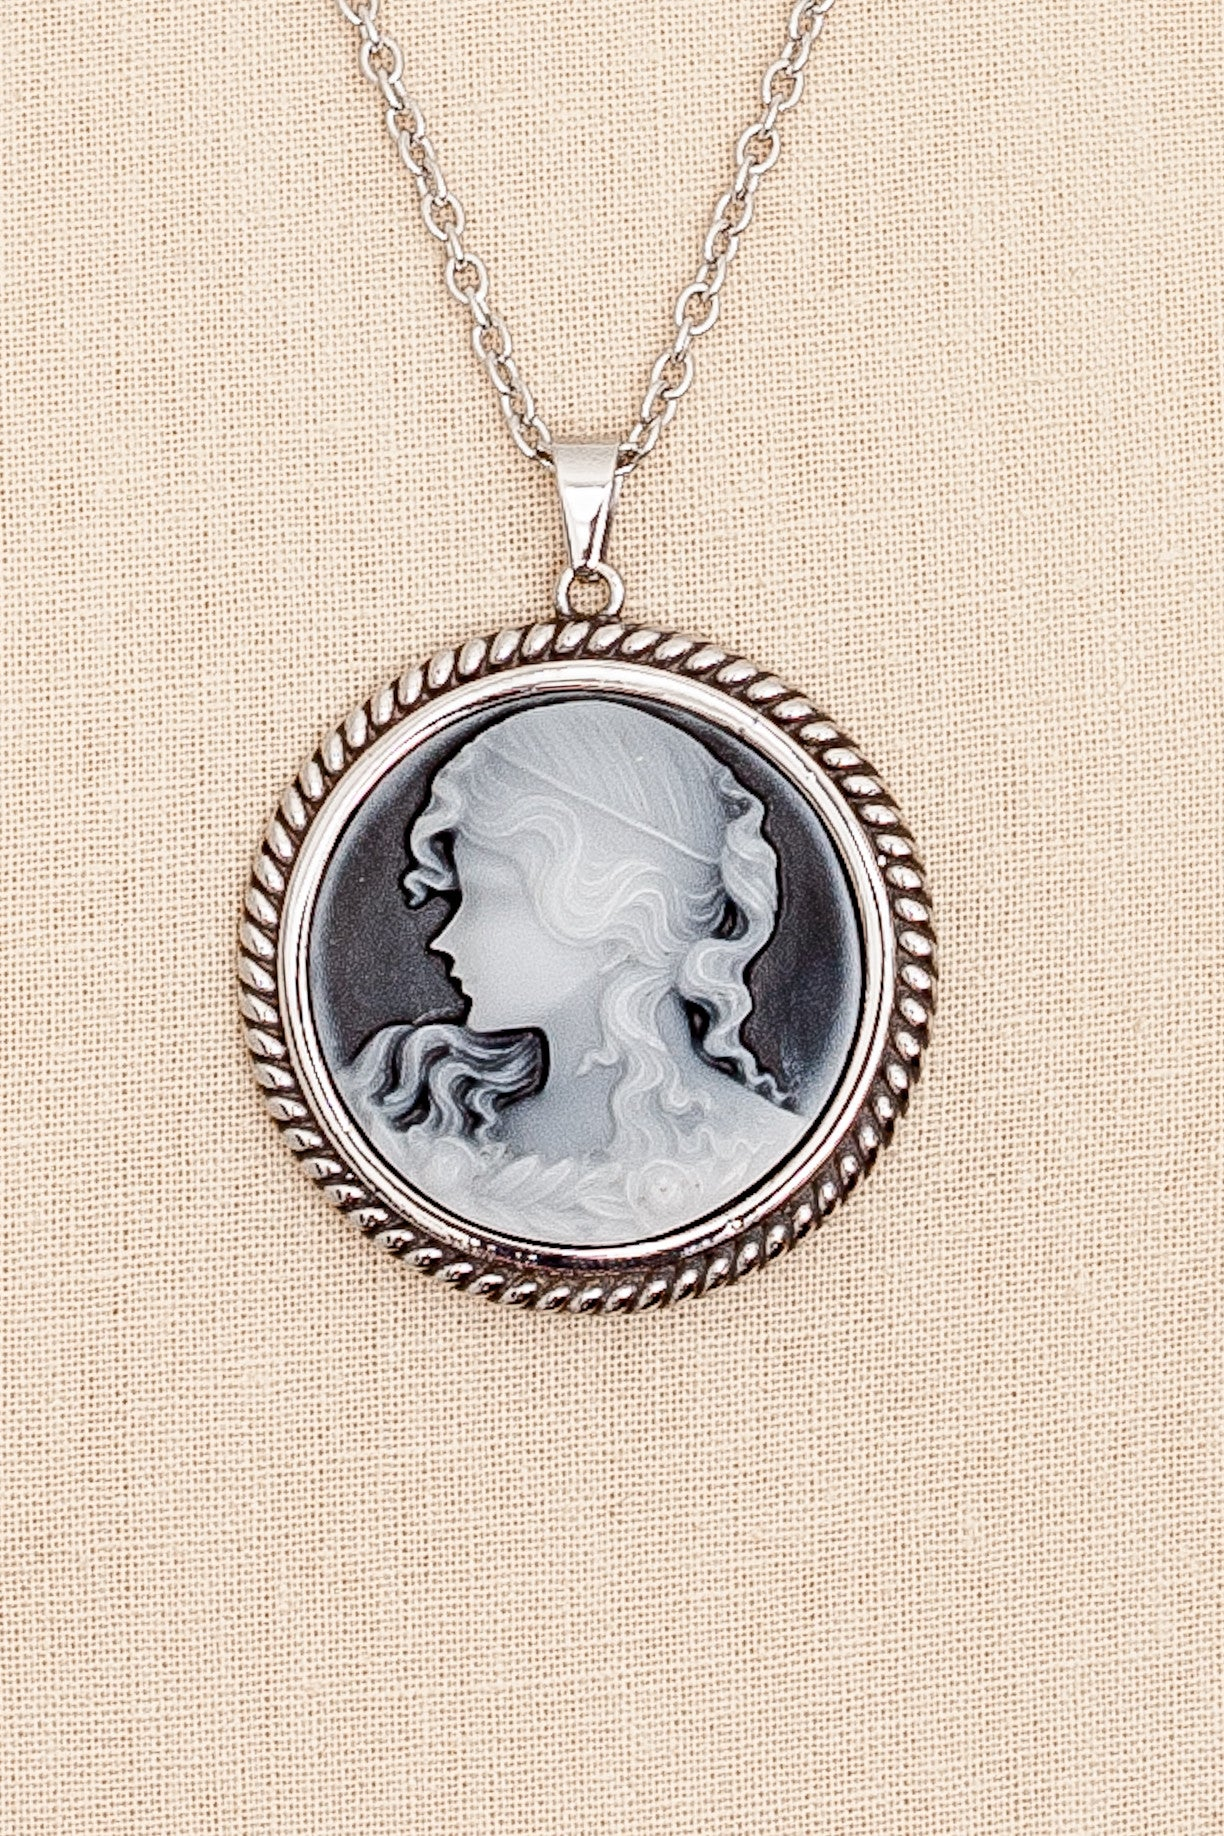 50's__Vintage__Cameo Necklace